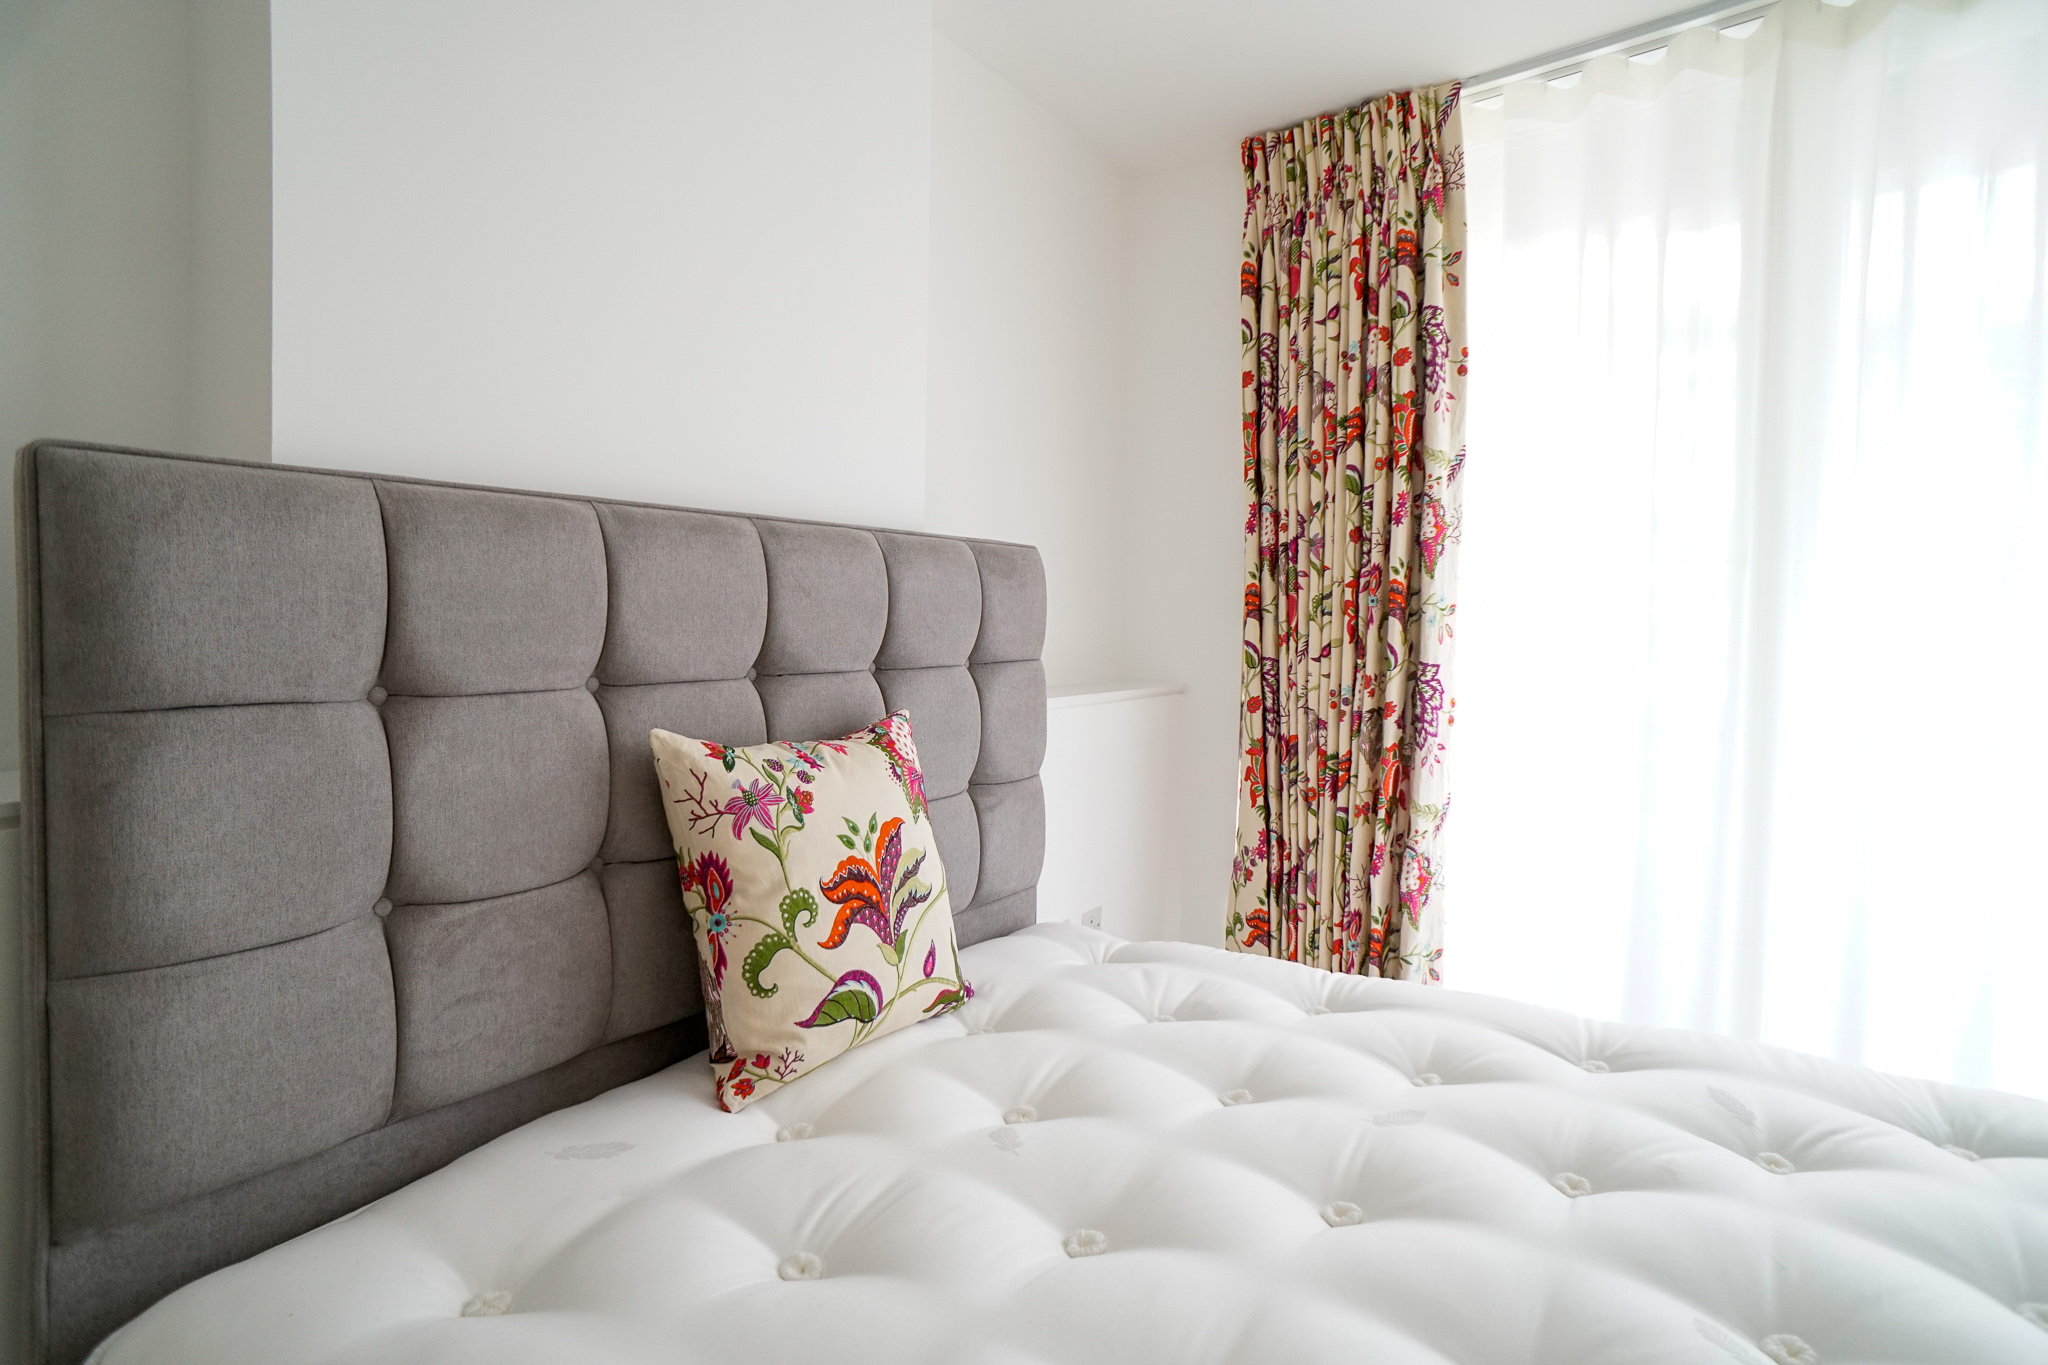 Headboard with upholstered cushion and bespoke curtains